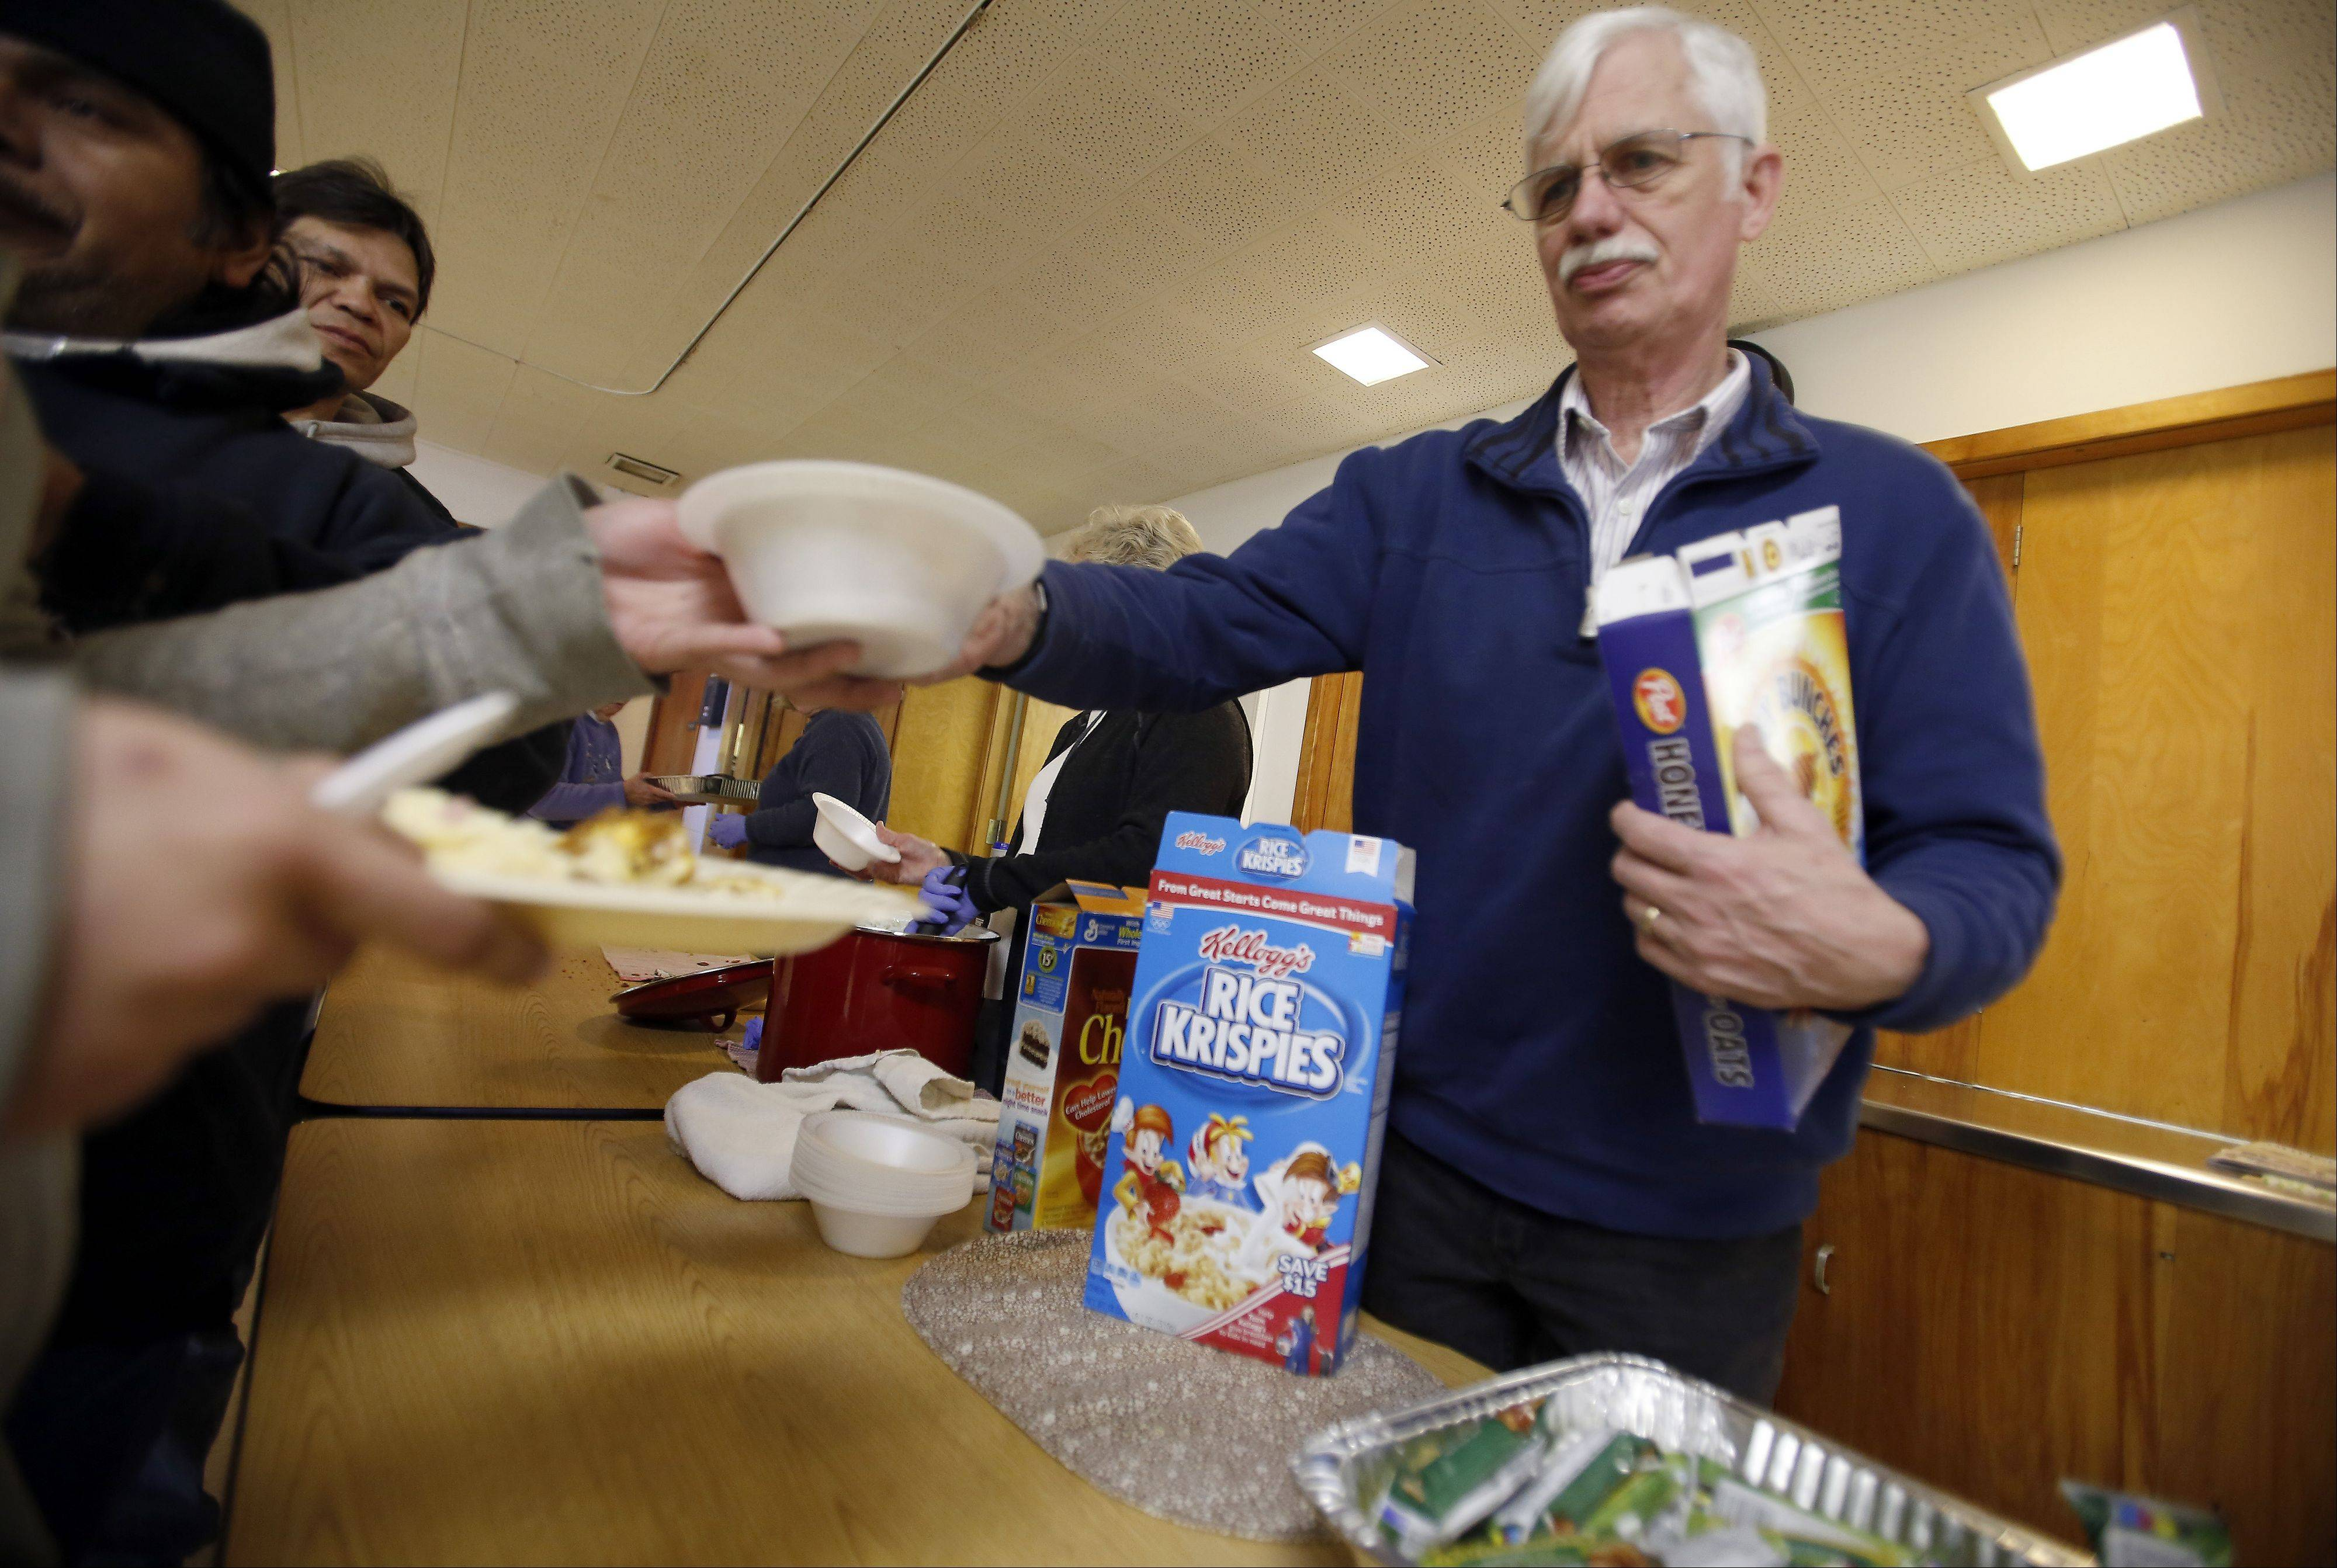 Gene Heckenberg, of Algonquin, hands out some cereal Wednesday at Vineyard Church in Elgin.